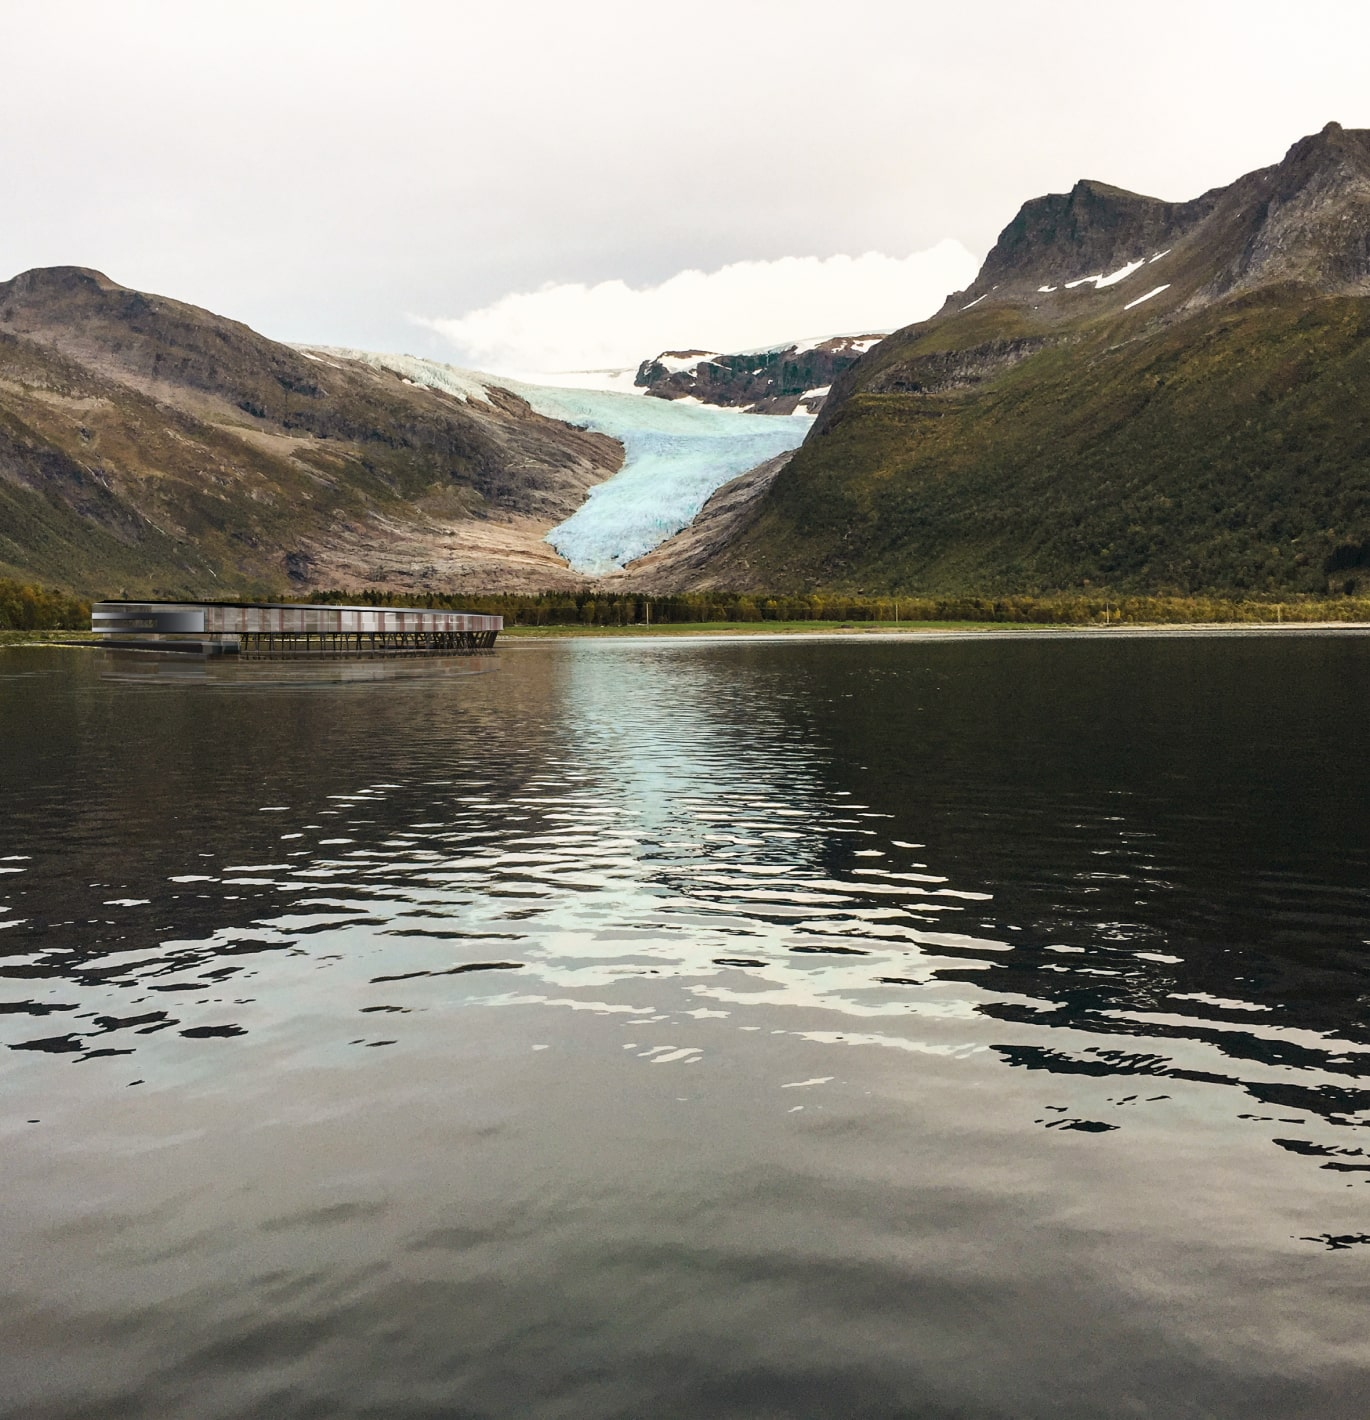 Groundlevel view of Svart hotel, lake and glacier.